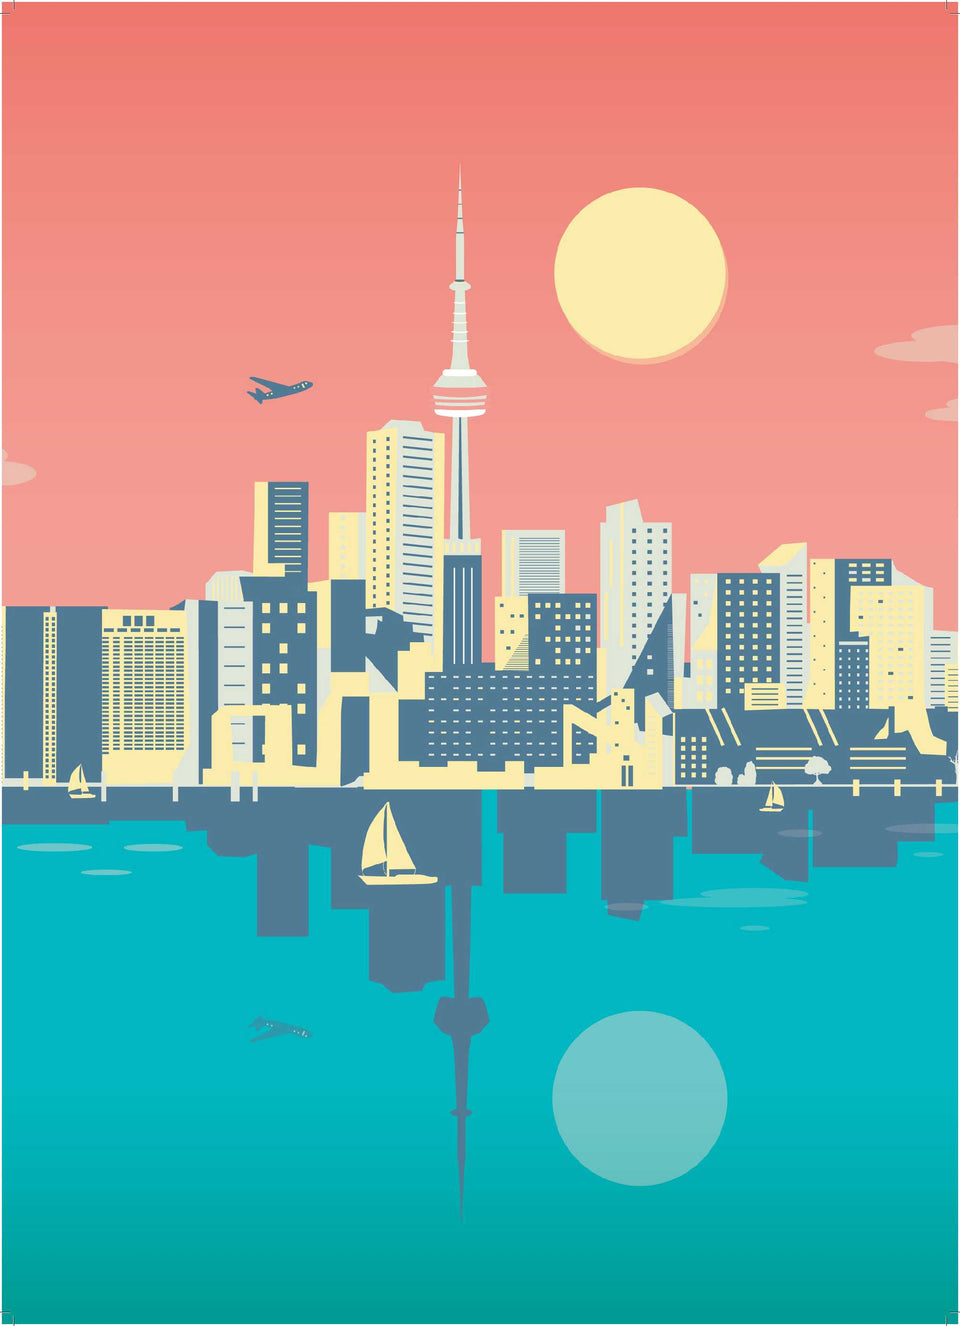 Toronto Skyline Illustration by Cindy Rose Studio